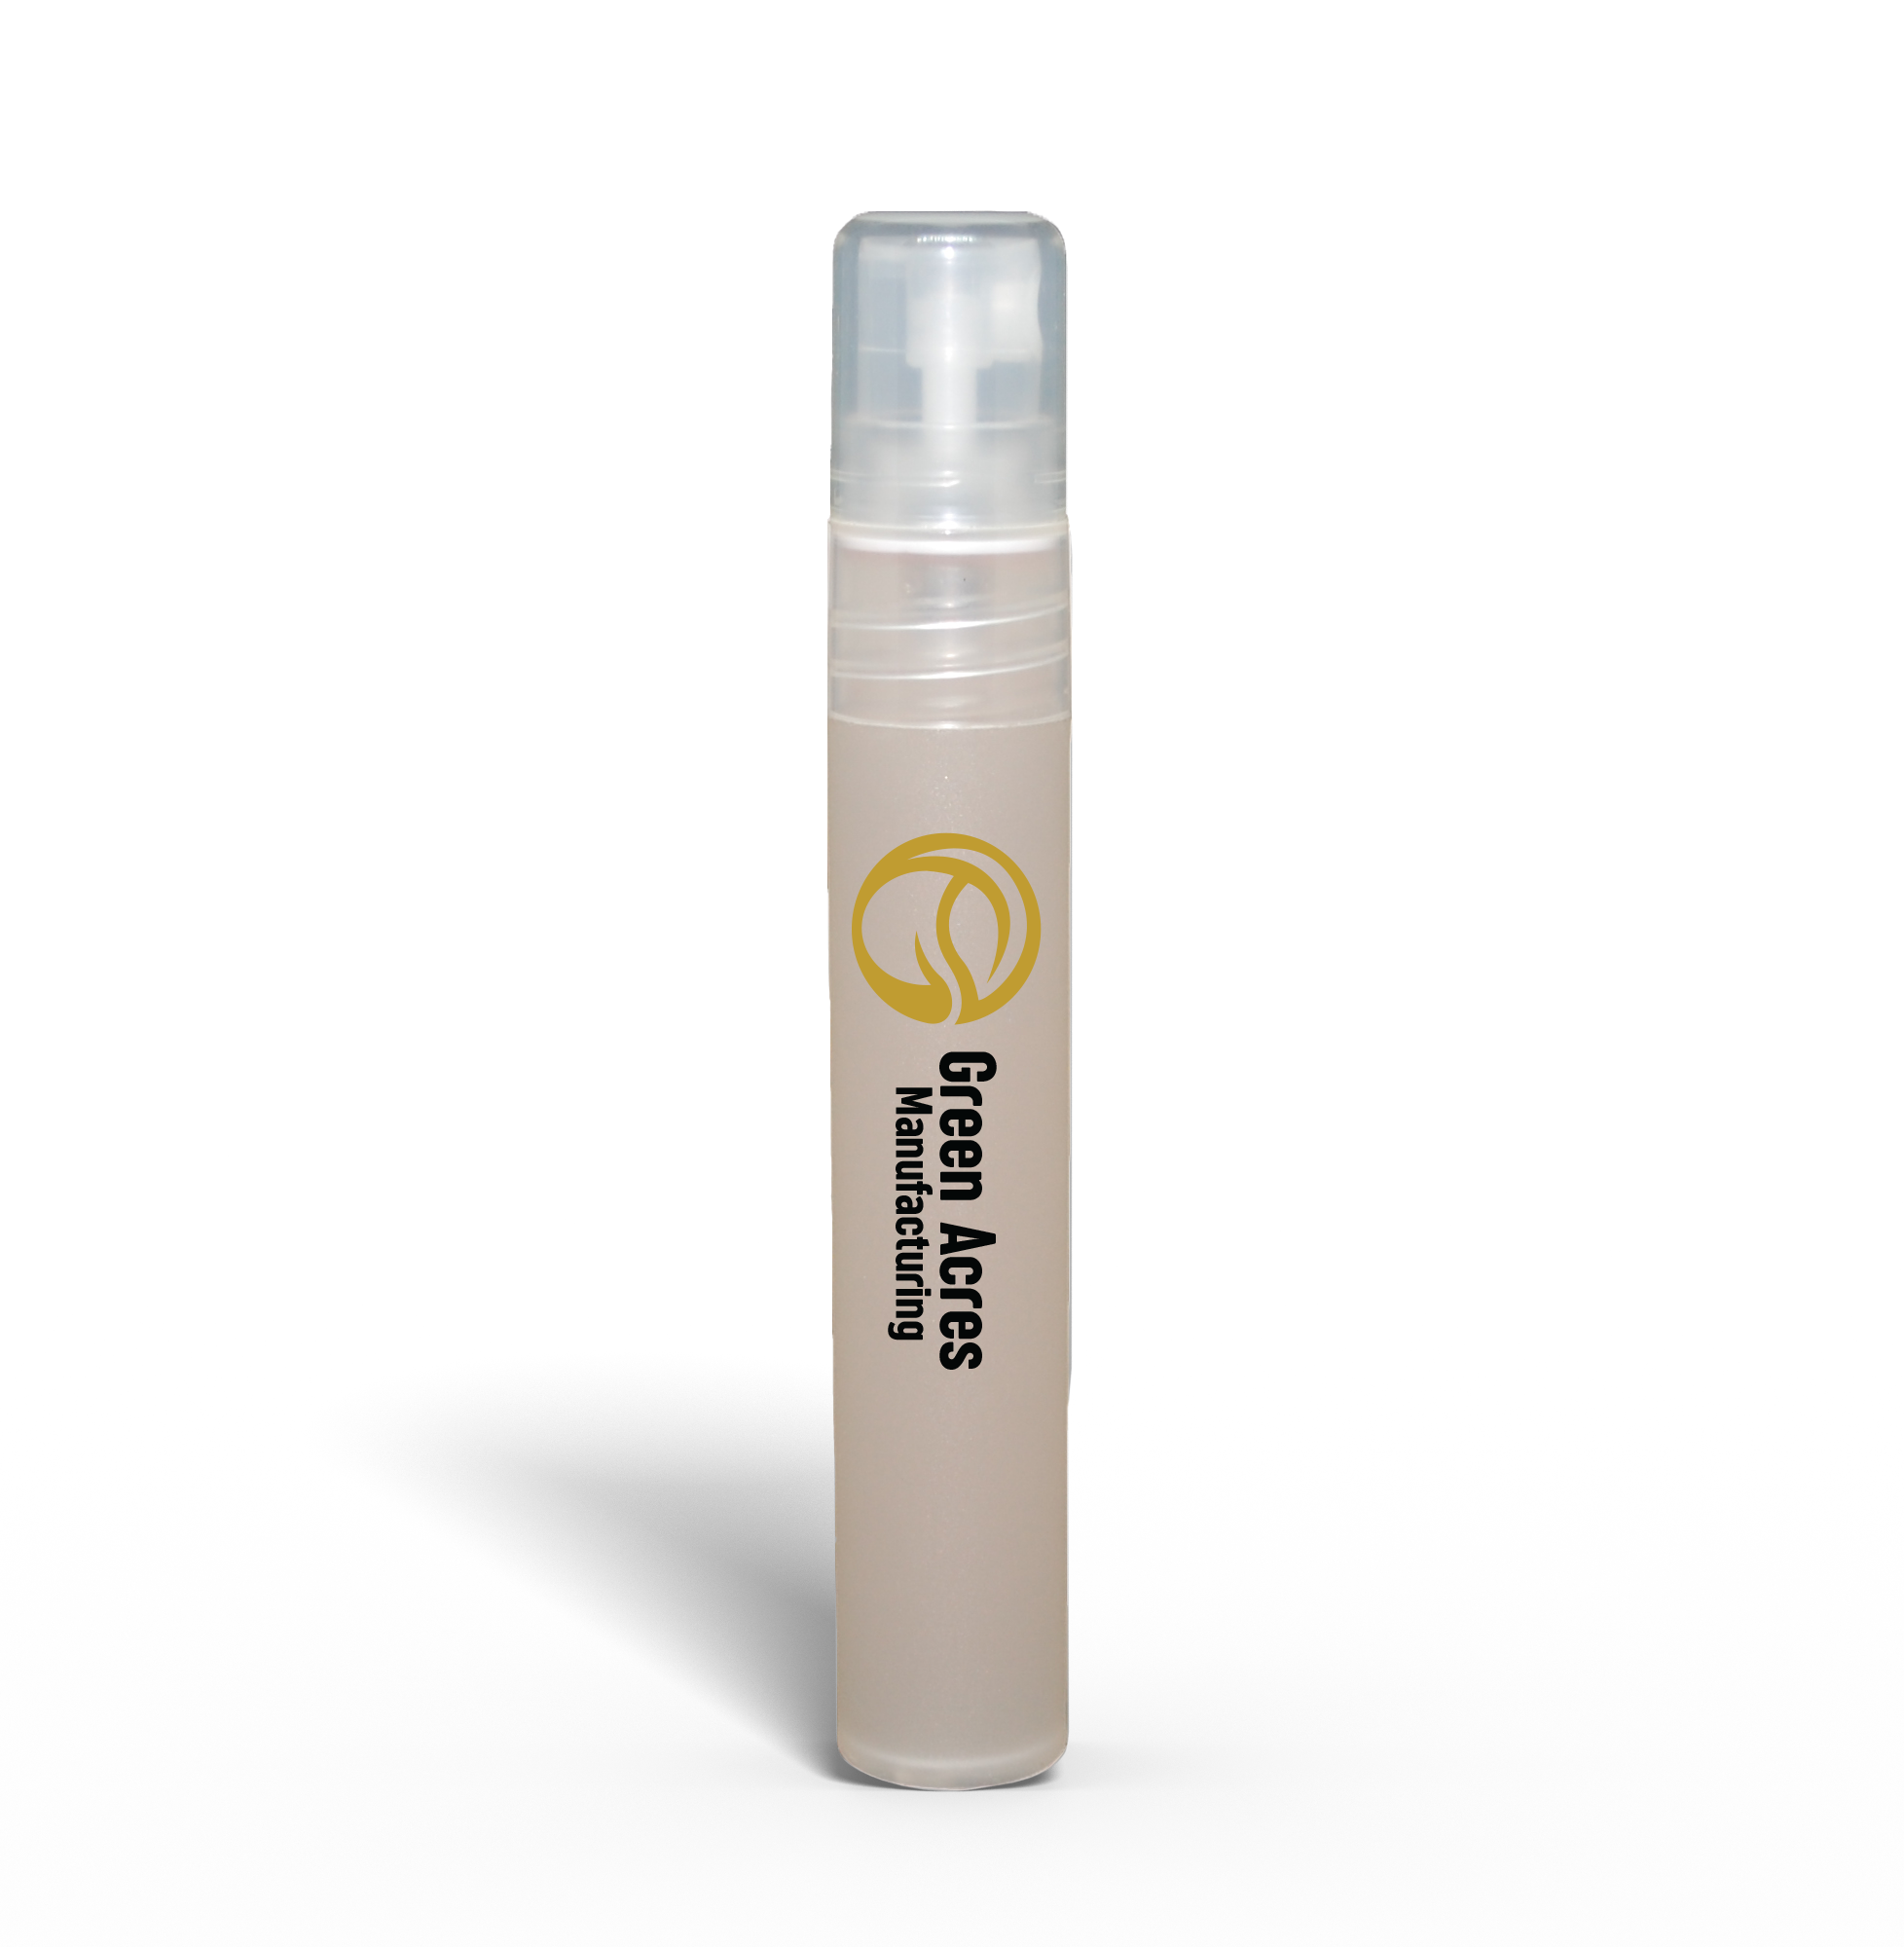 CBD Oral Spray – Stress Relief Formula